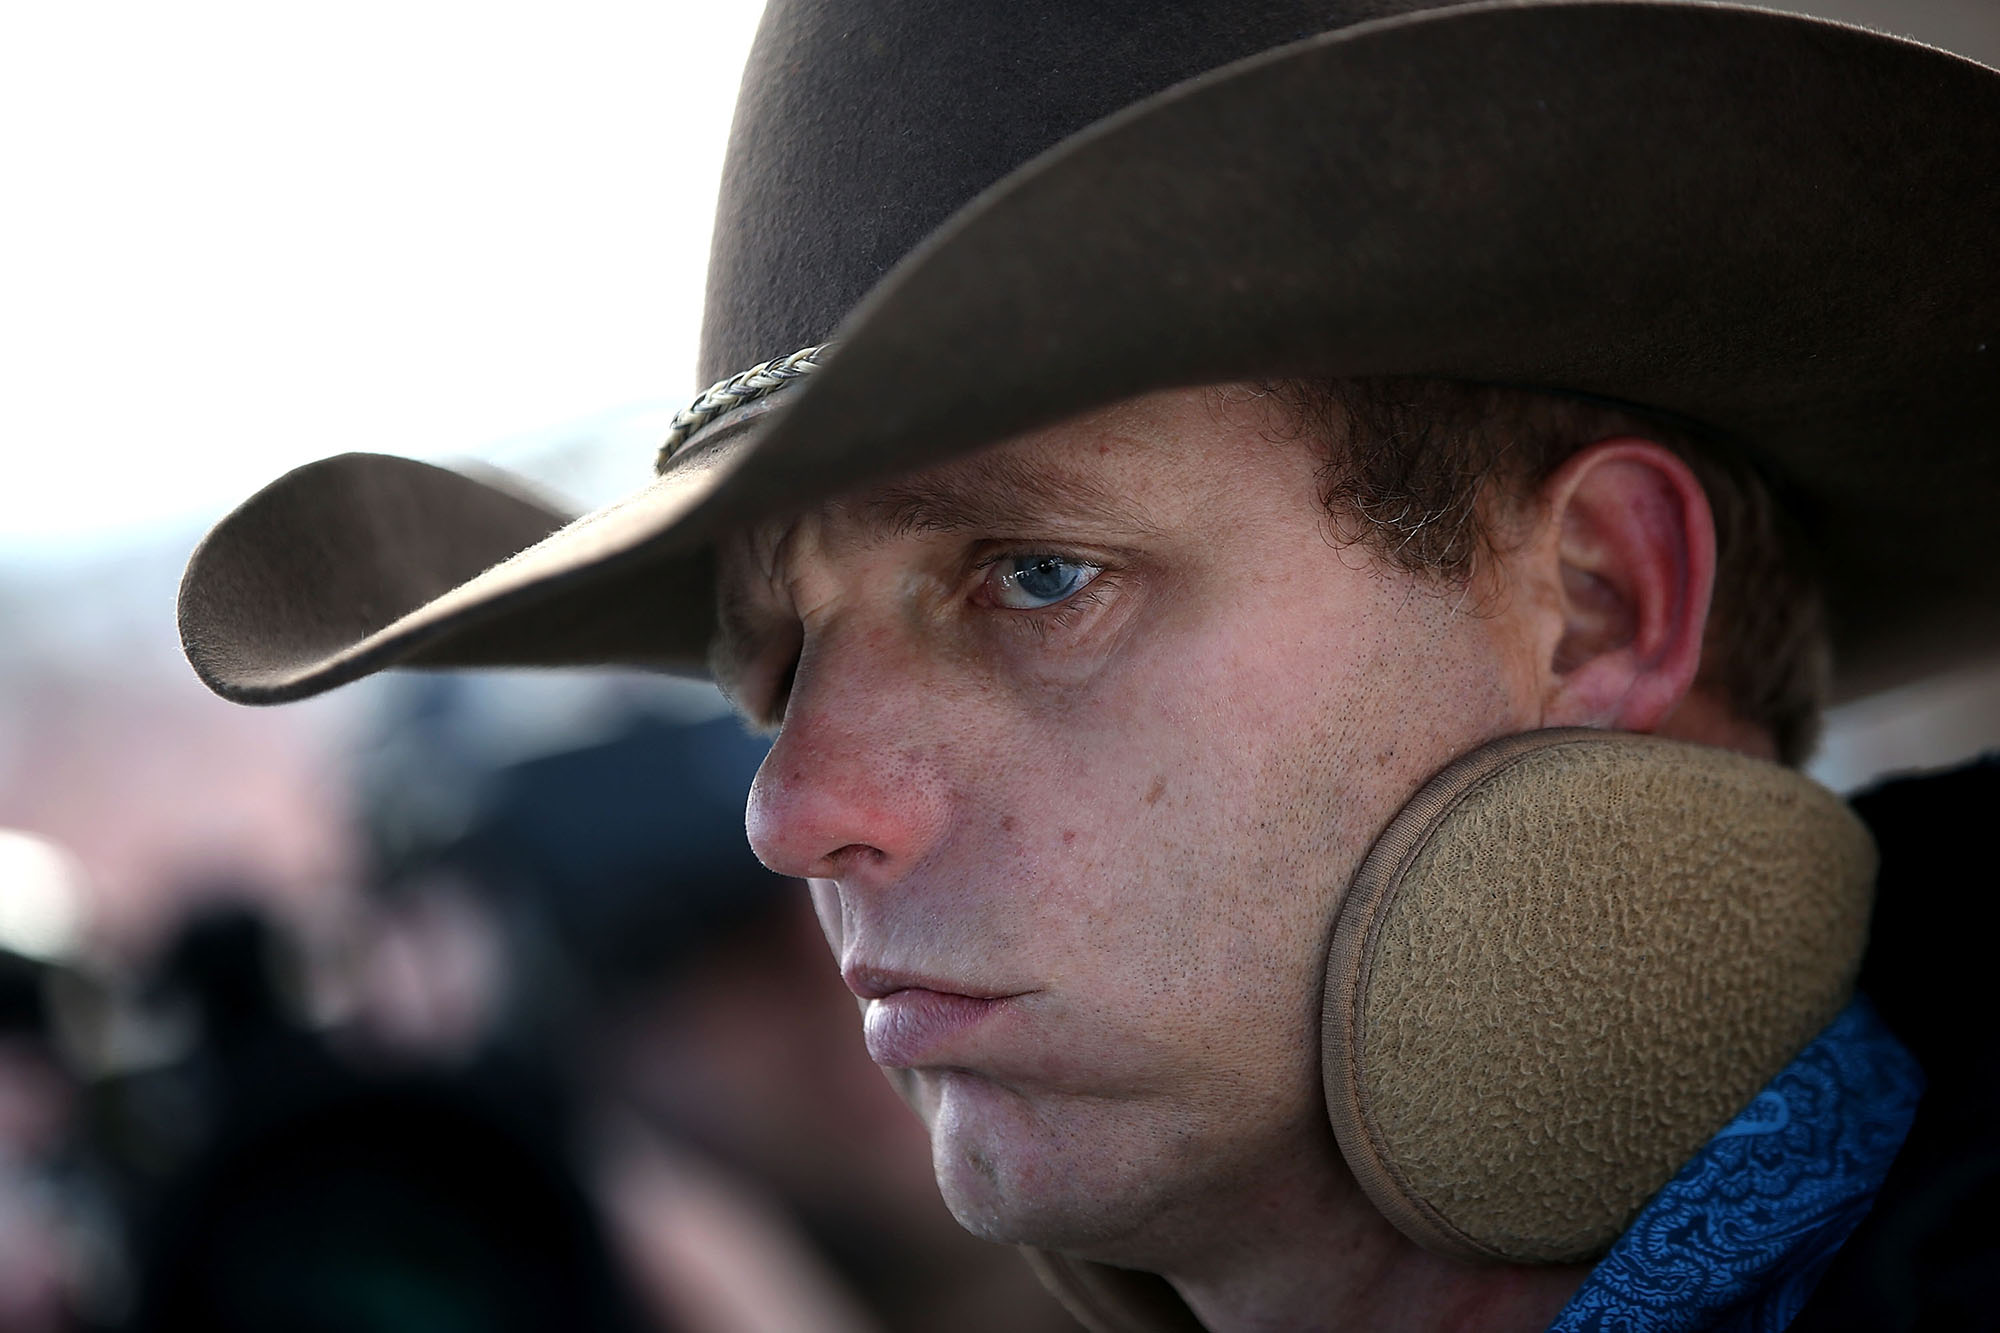 BURNS, OR - JANUARY 06:  Ryan Bundy, a member of an anti-government militia, speaks to members of the media in front of the Malheur National Wildlife Refuge Headquarters on January 6, 2016 near Burns, Oregon.  An armed anti-government militia group continues to occupy the Malheur National Wildlife Headquarters as they protest the jailing  of two ranchers for arson.  (Photo by Justin Sullivan/Getty Images)